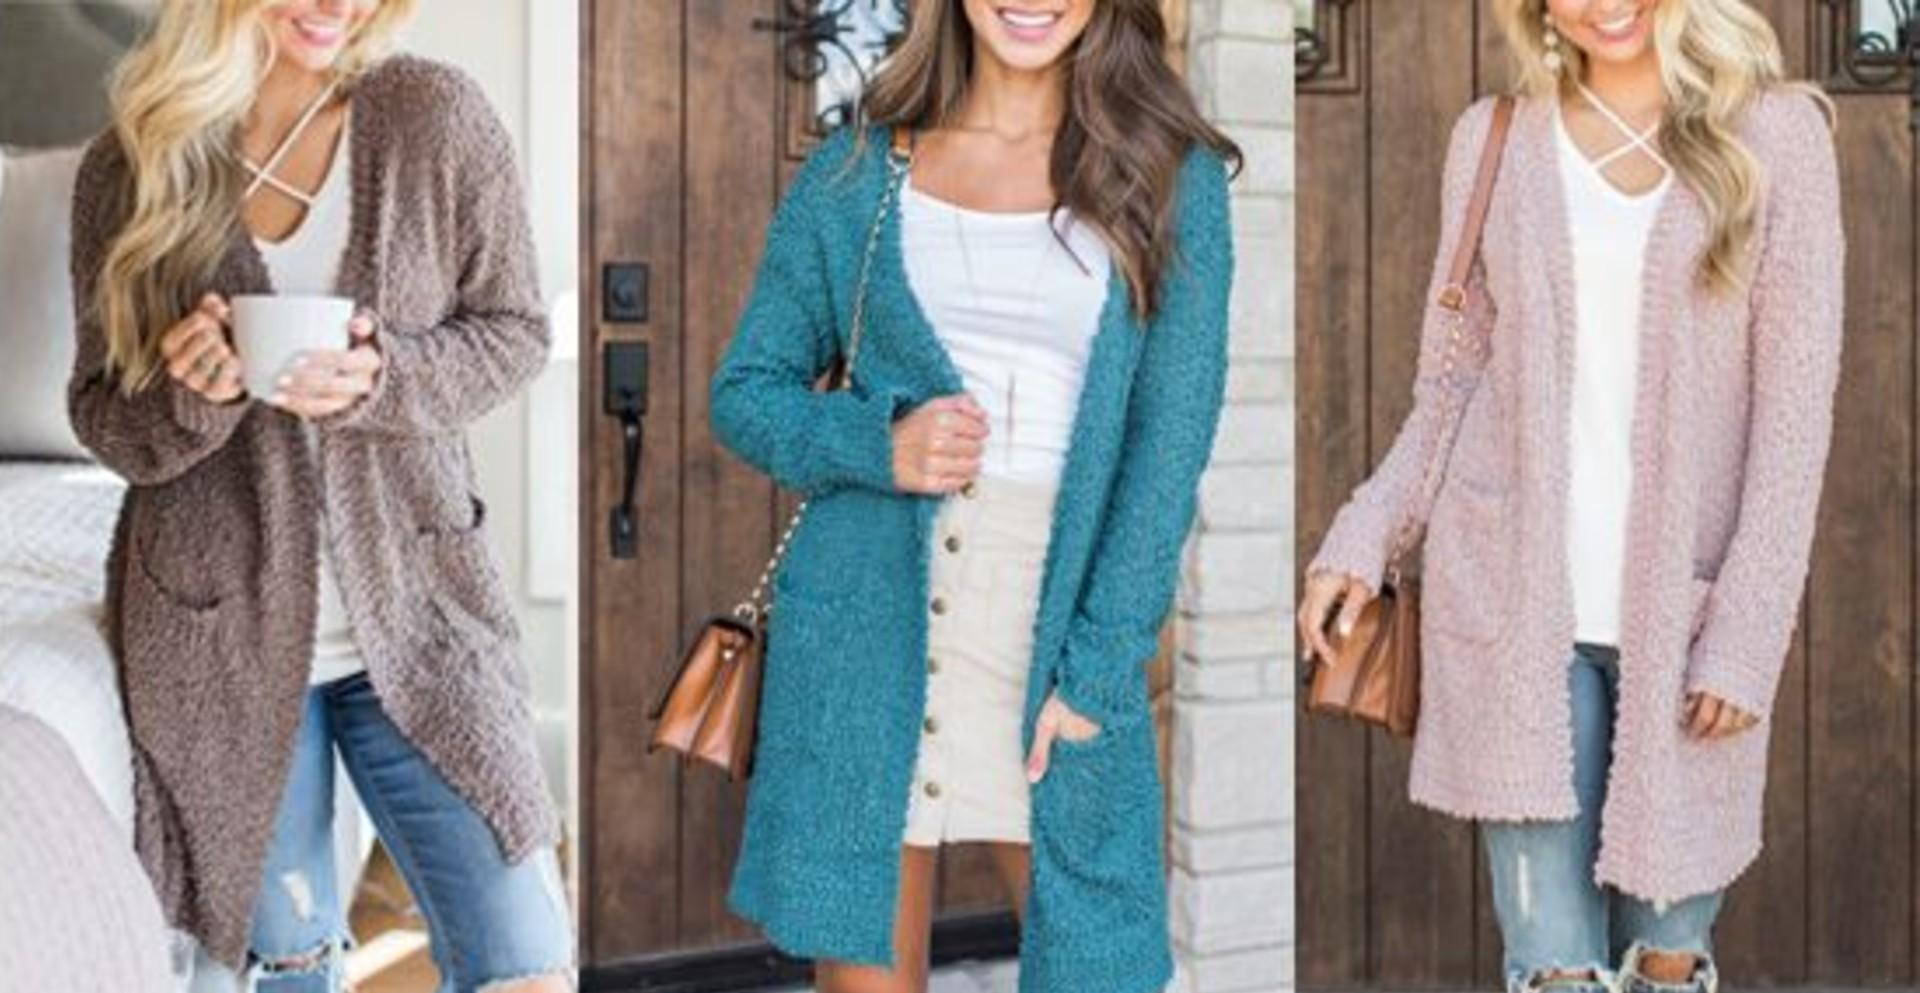 'Like wearing a blanket': Why Amazon sales for this $33 cardigan have increased by 3,925%. Seriously.